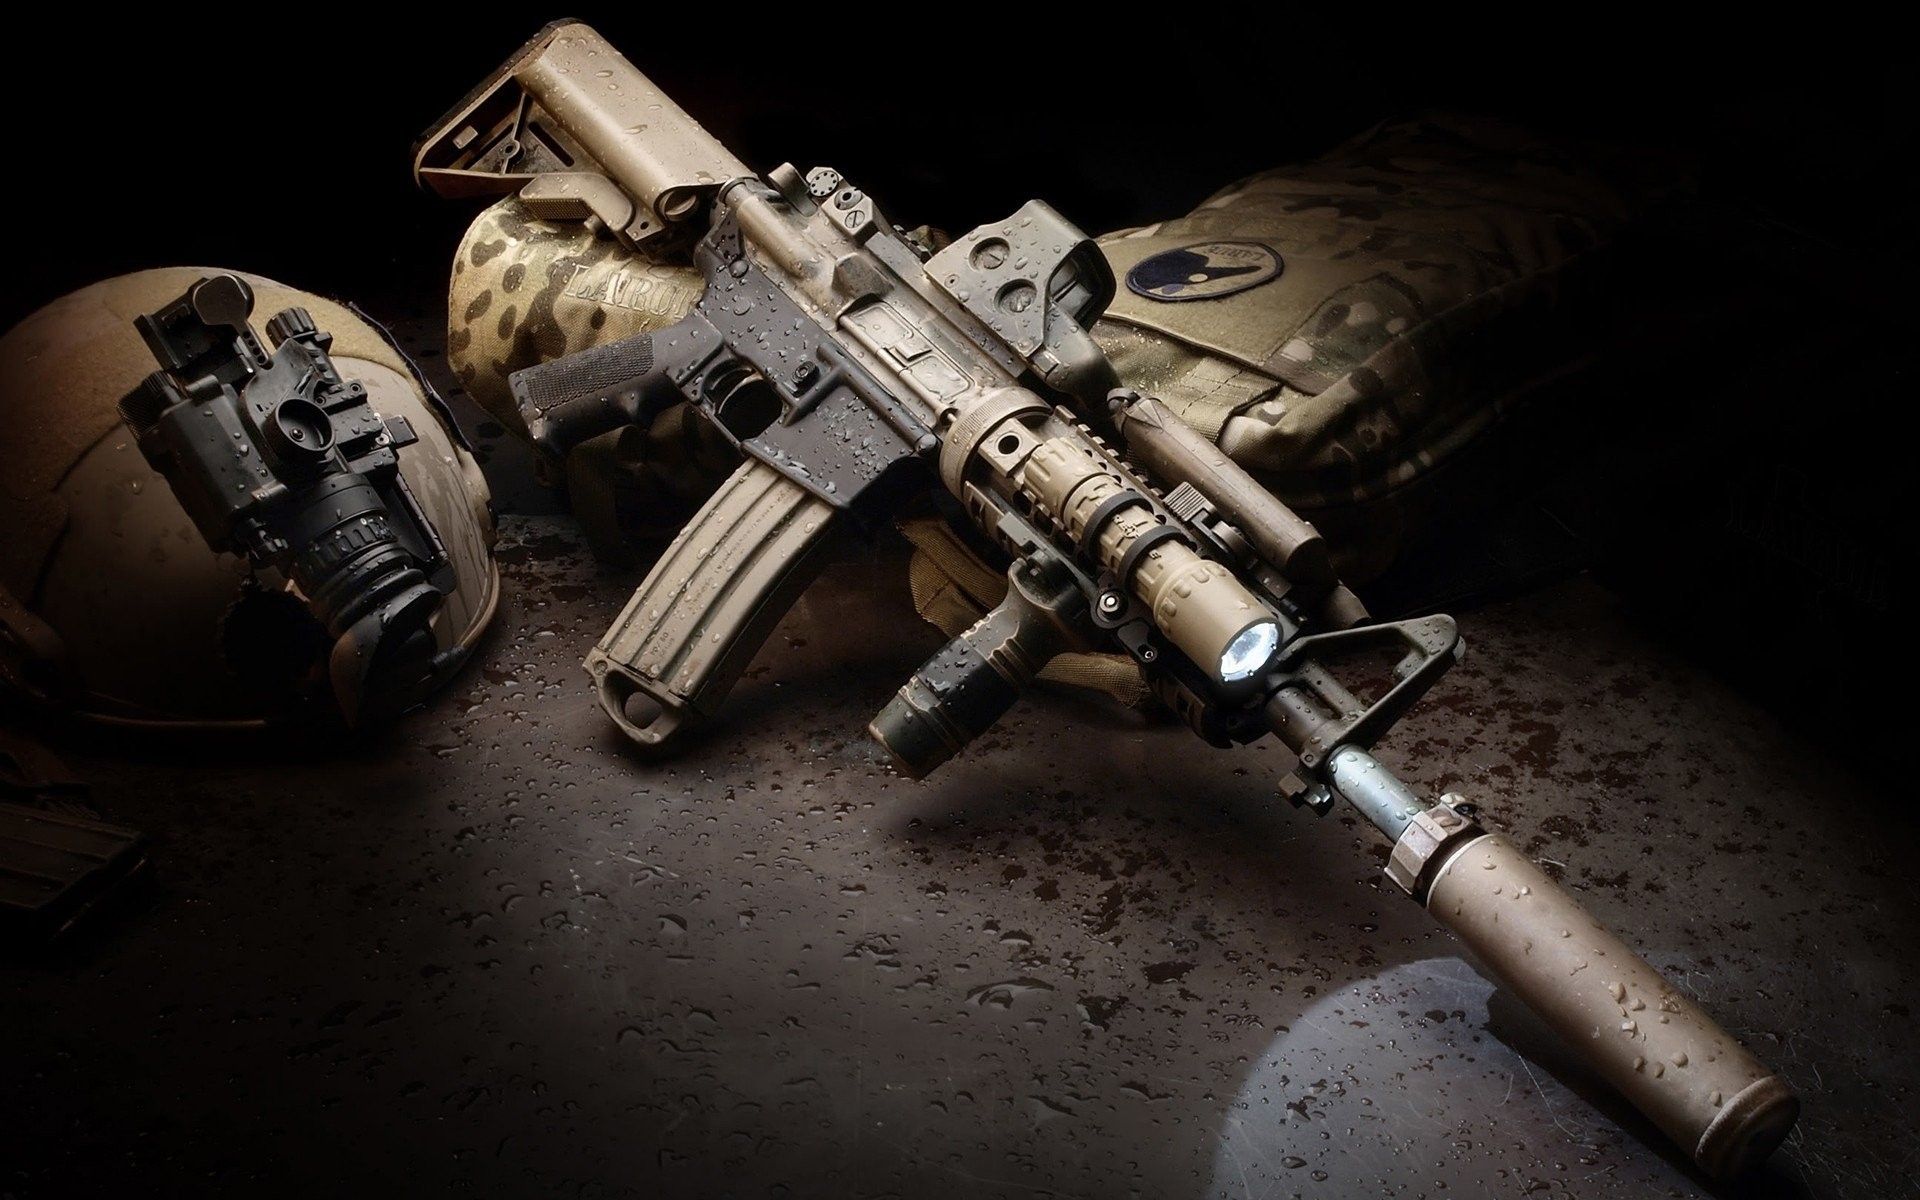 1920x1200 AR 15 Eotech Foregrip LaRue Tactical Magpul Rifles Silencer Suppressor Surefire LED WeaponLight Water Drops